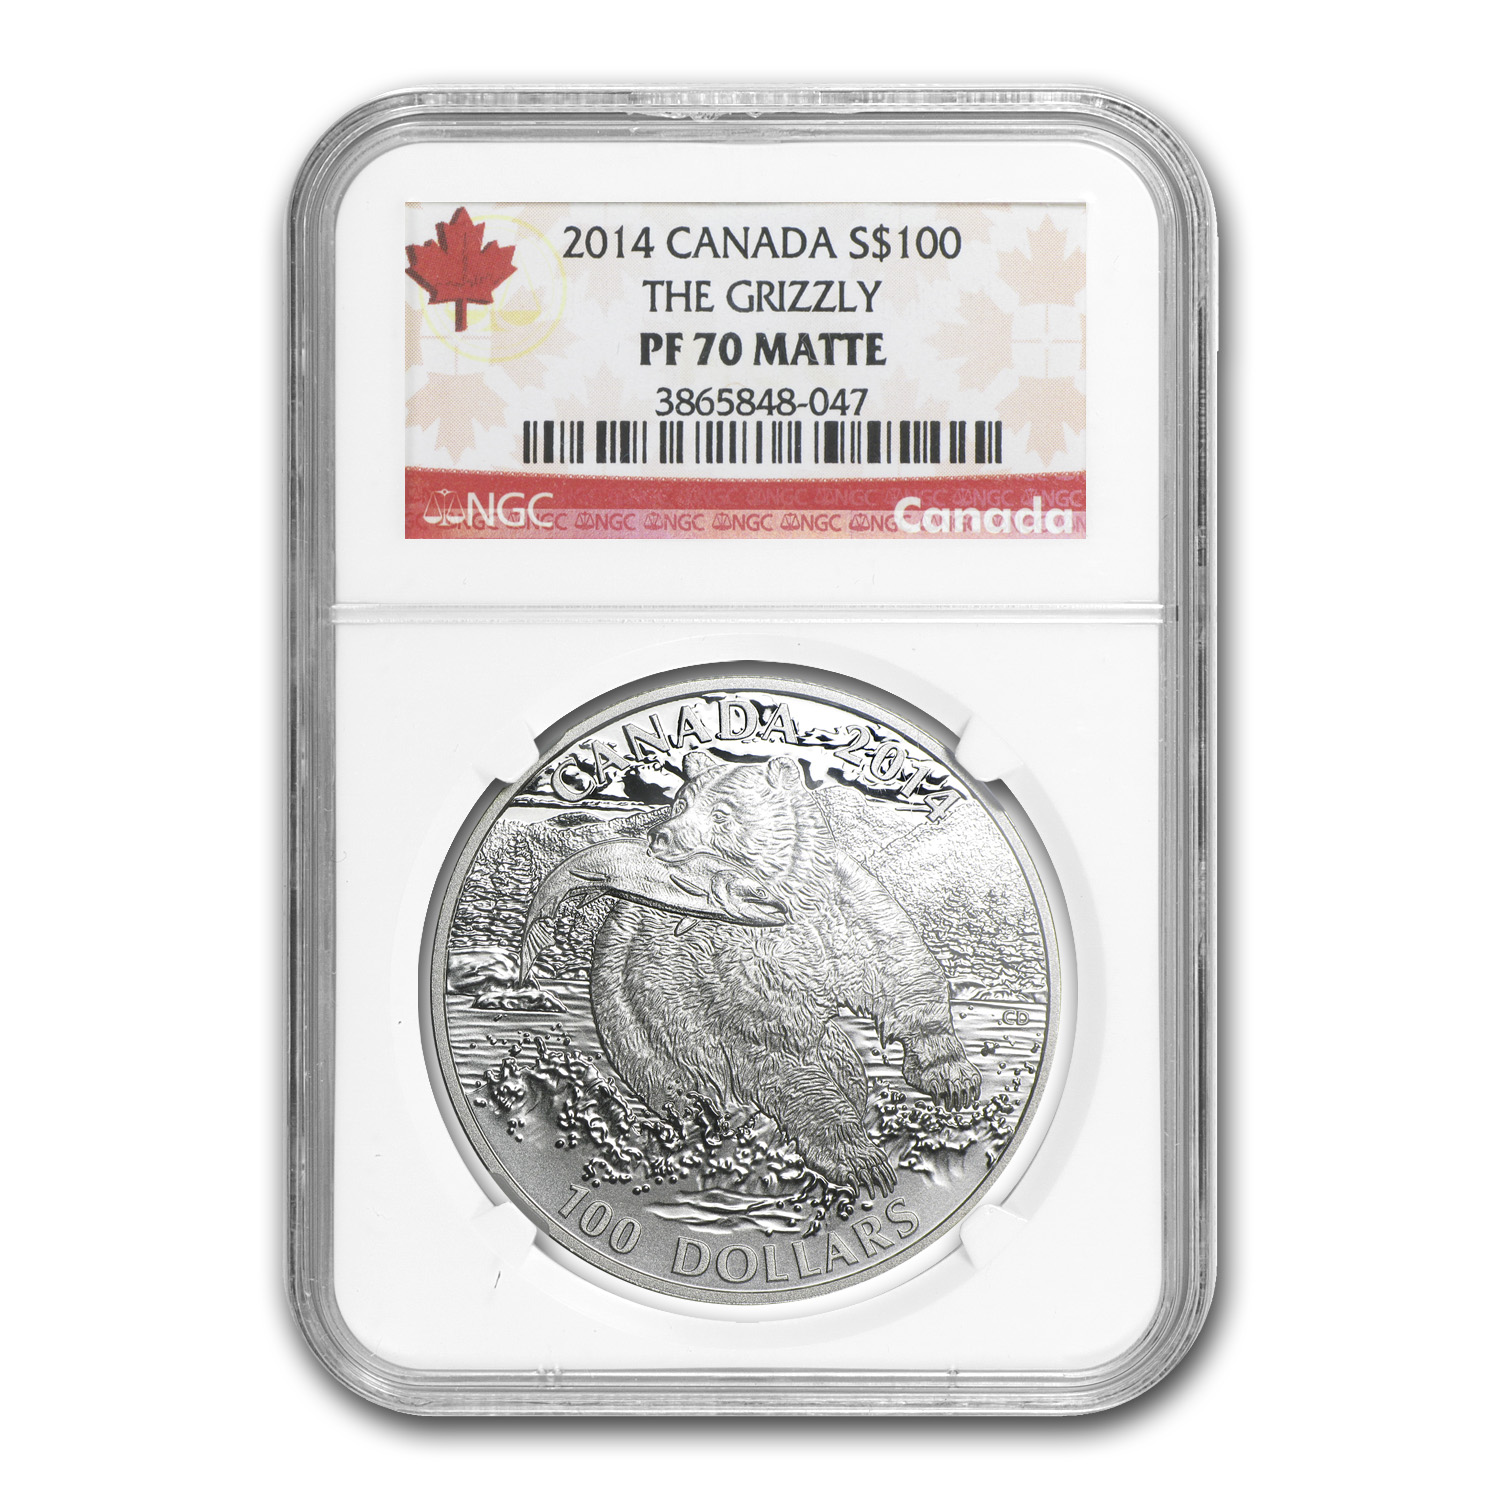 2014 Canada 1 oz Silver $100 Grizzly Bear PF-70 Matte NGC